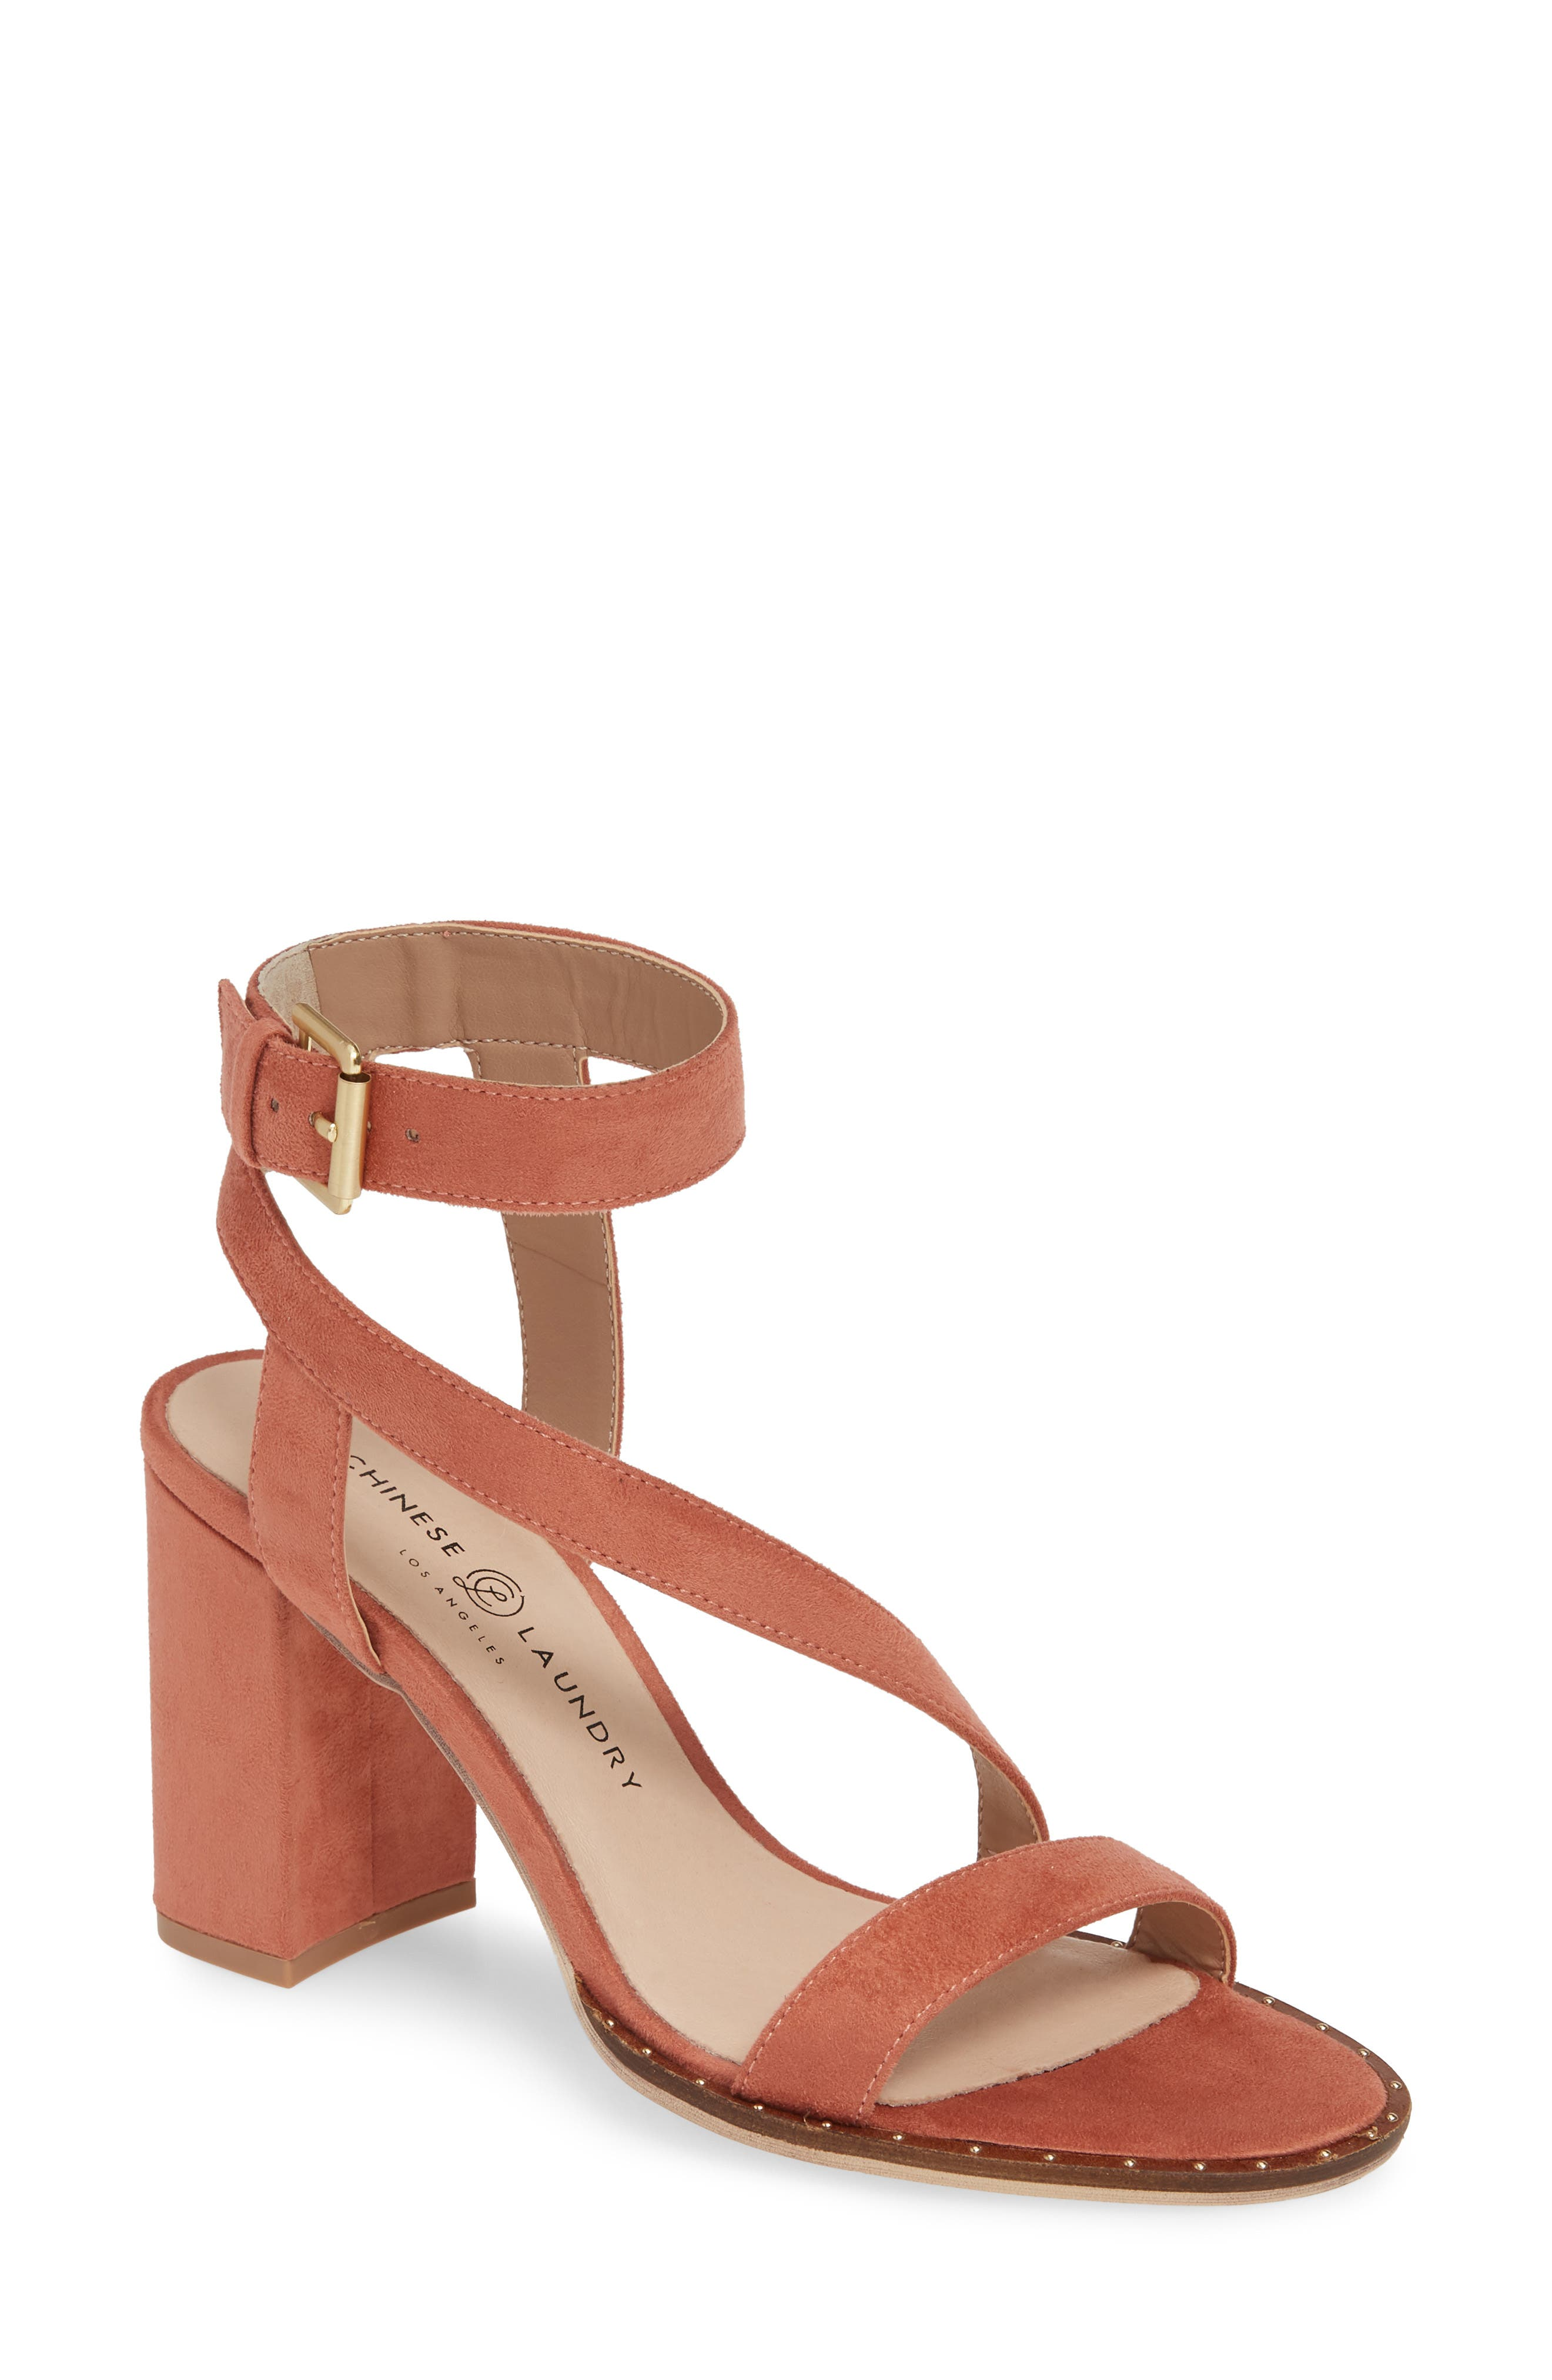 Chinese Laundry Simi Block Heel Sandal- Coral